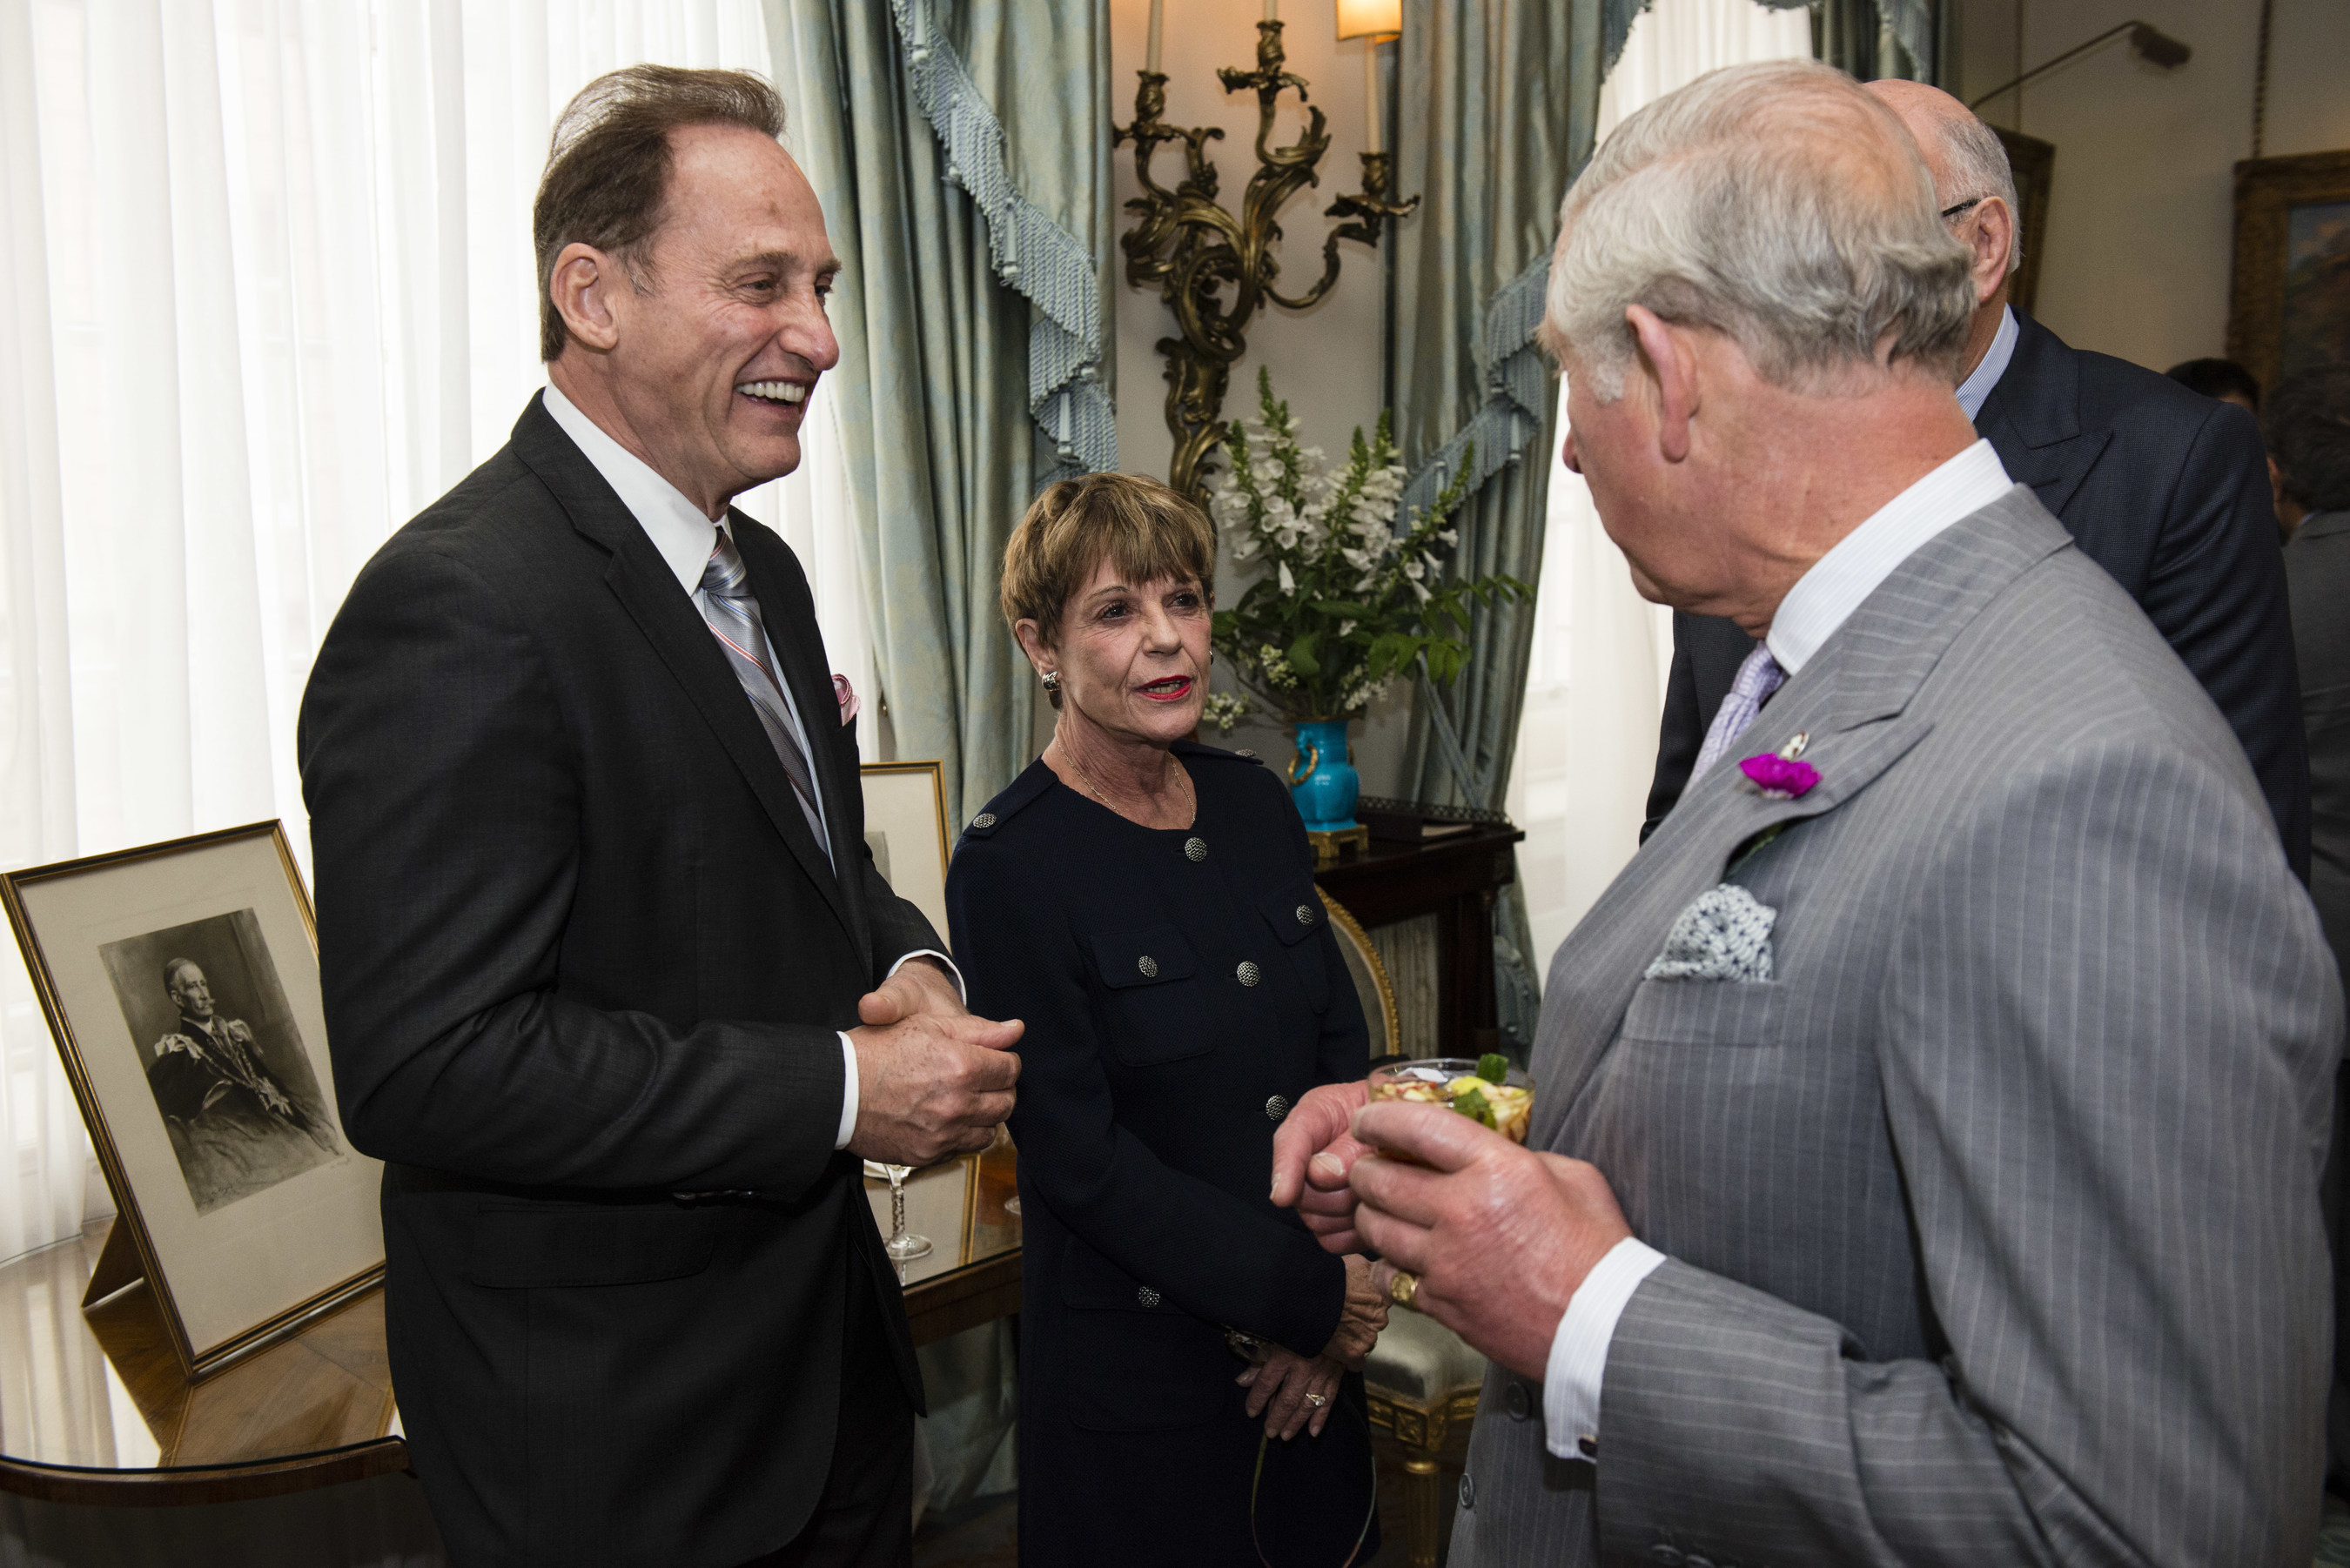 Park West Gallery Founder and CEO Albert Scaglione and his wife, Mitsie, meet with Prince Charles to discuss the Prince's Trust International organization.